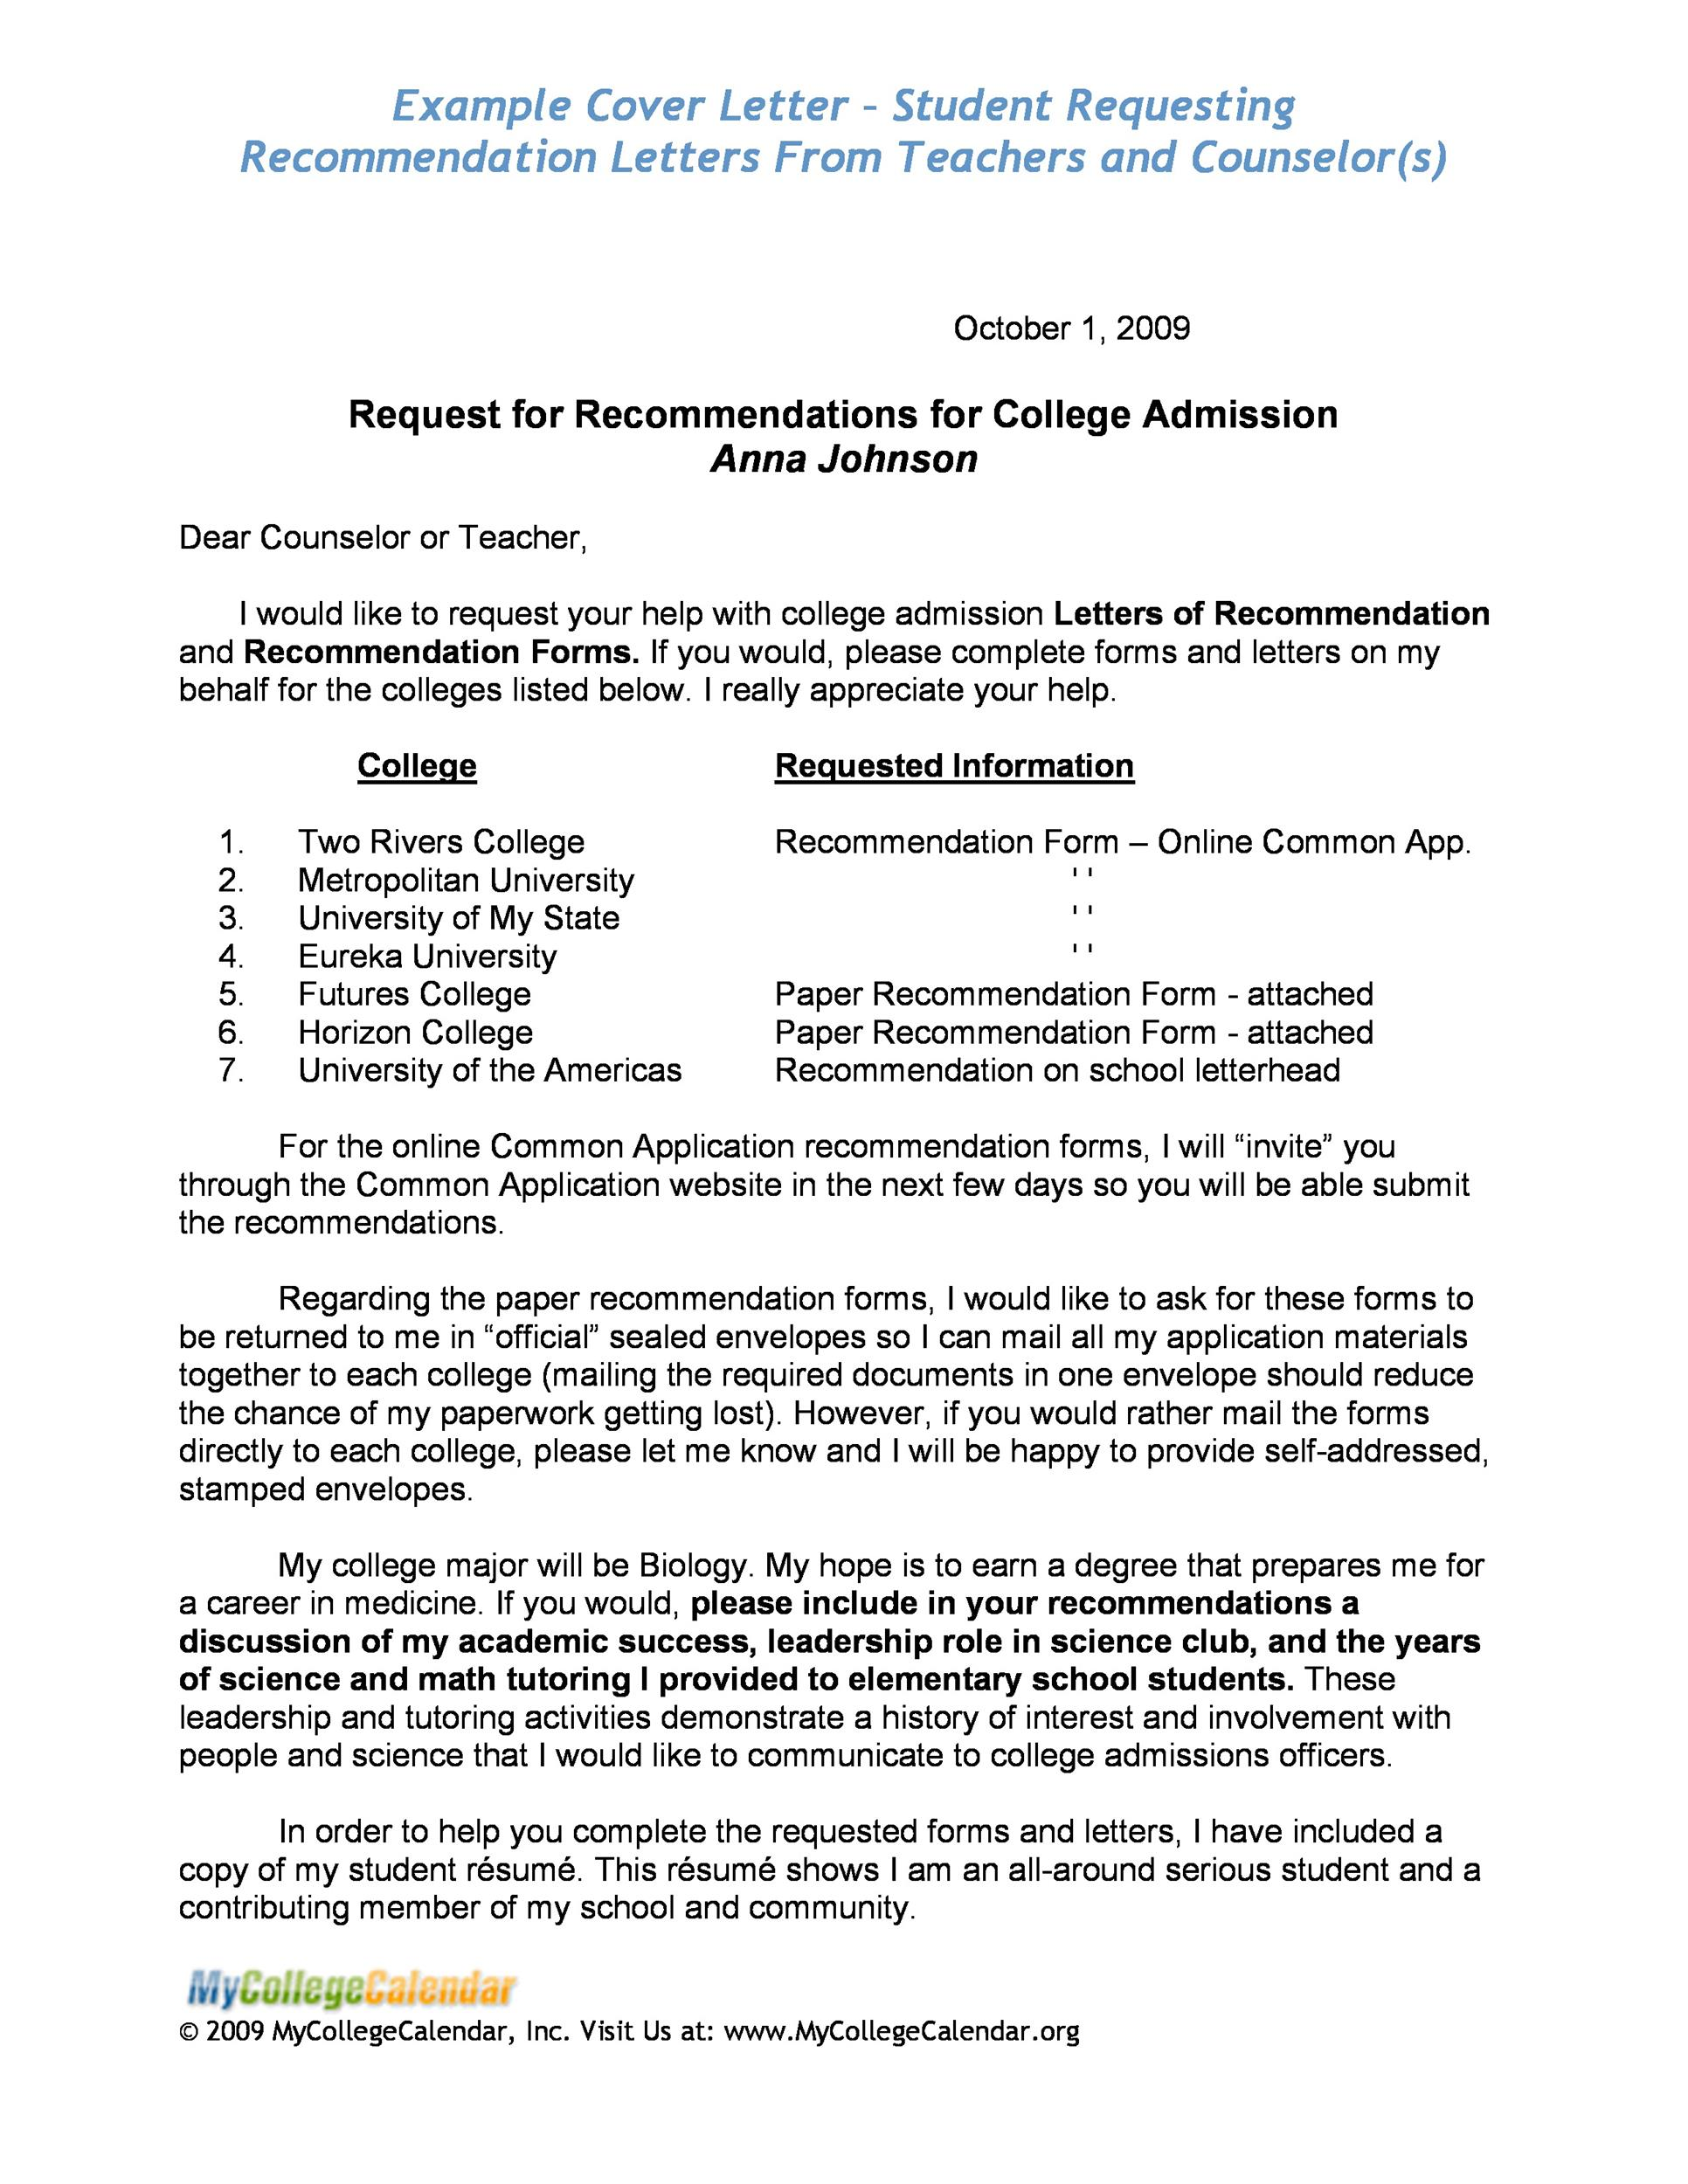 Letter of Recommendations